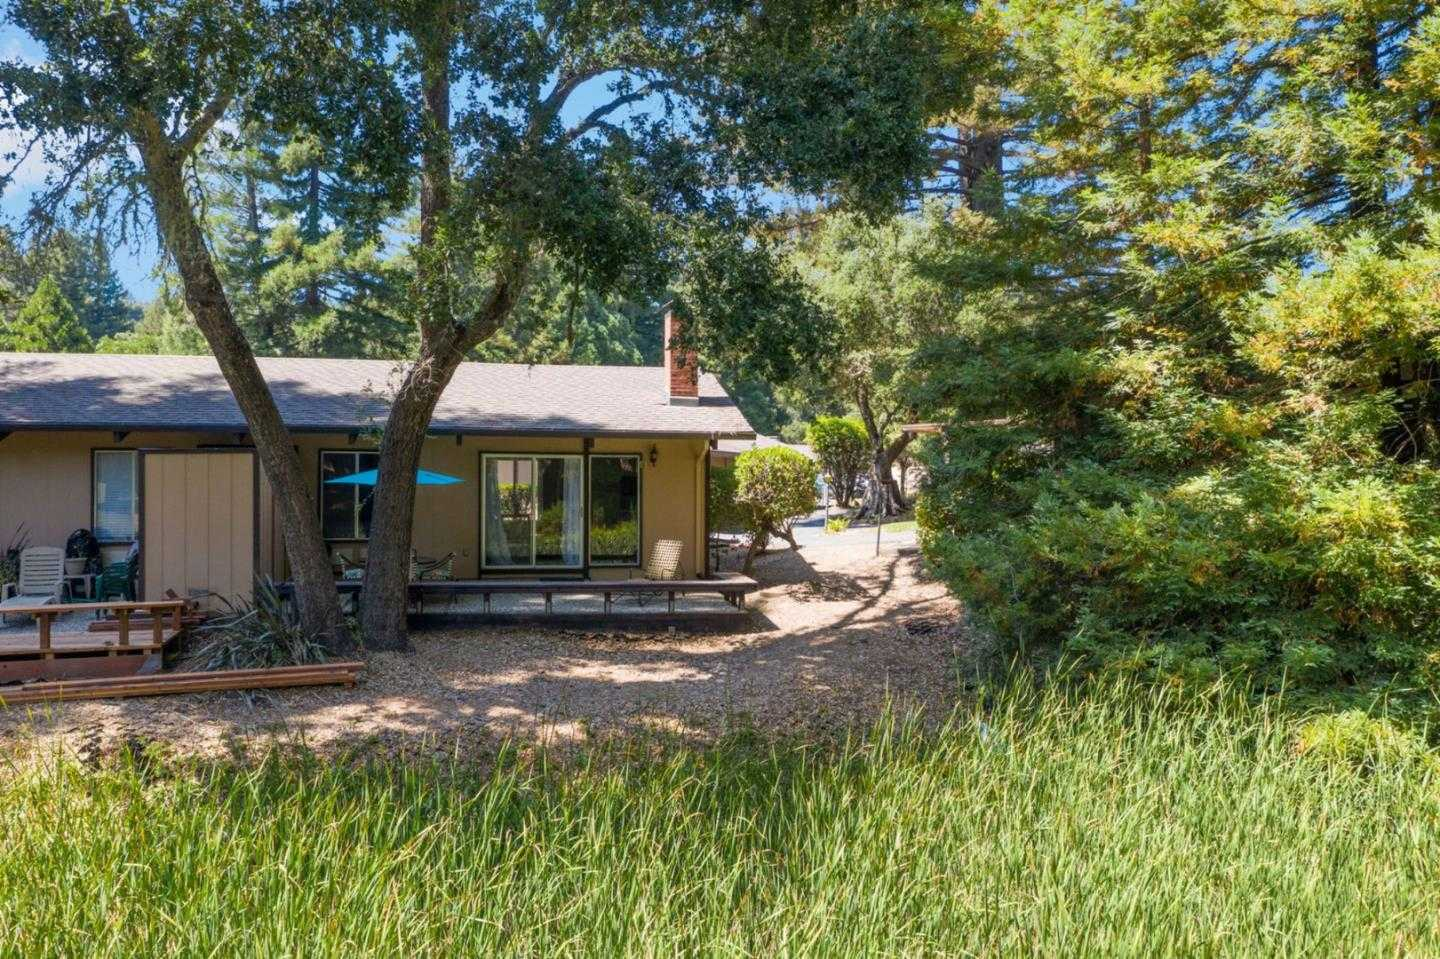 128 Kings HWY BOULDER CREEK, CA 95006